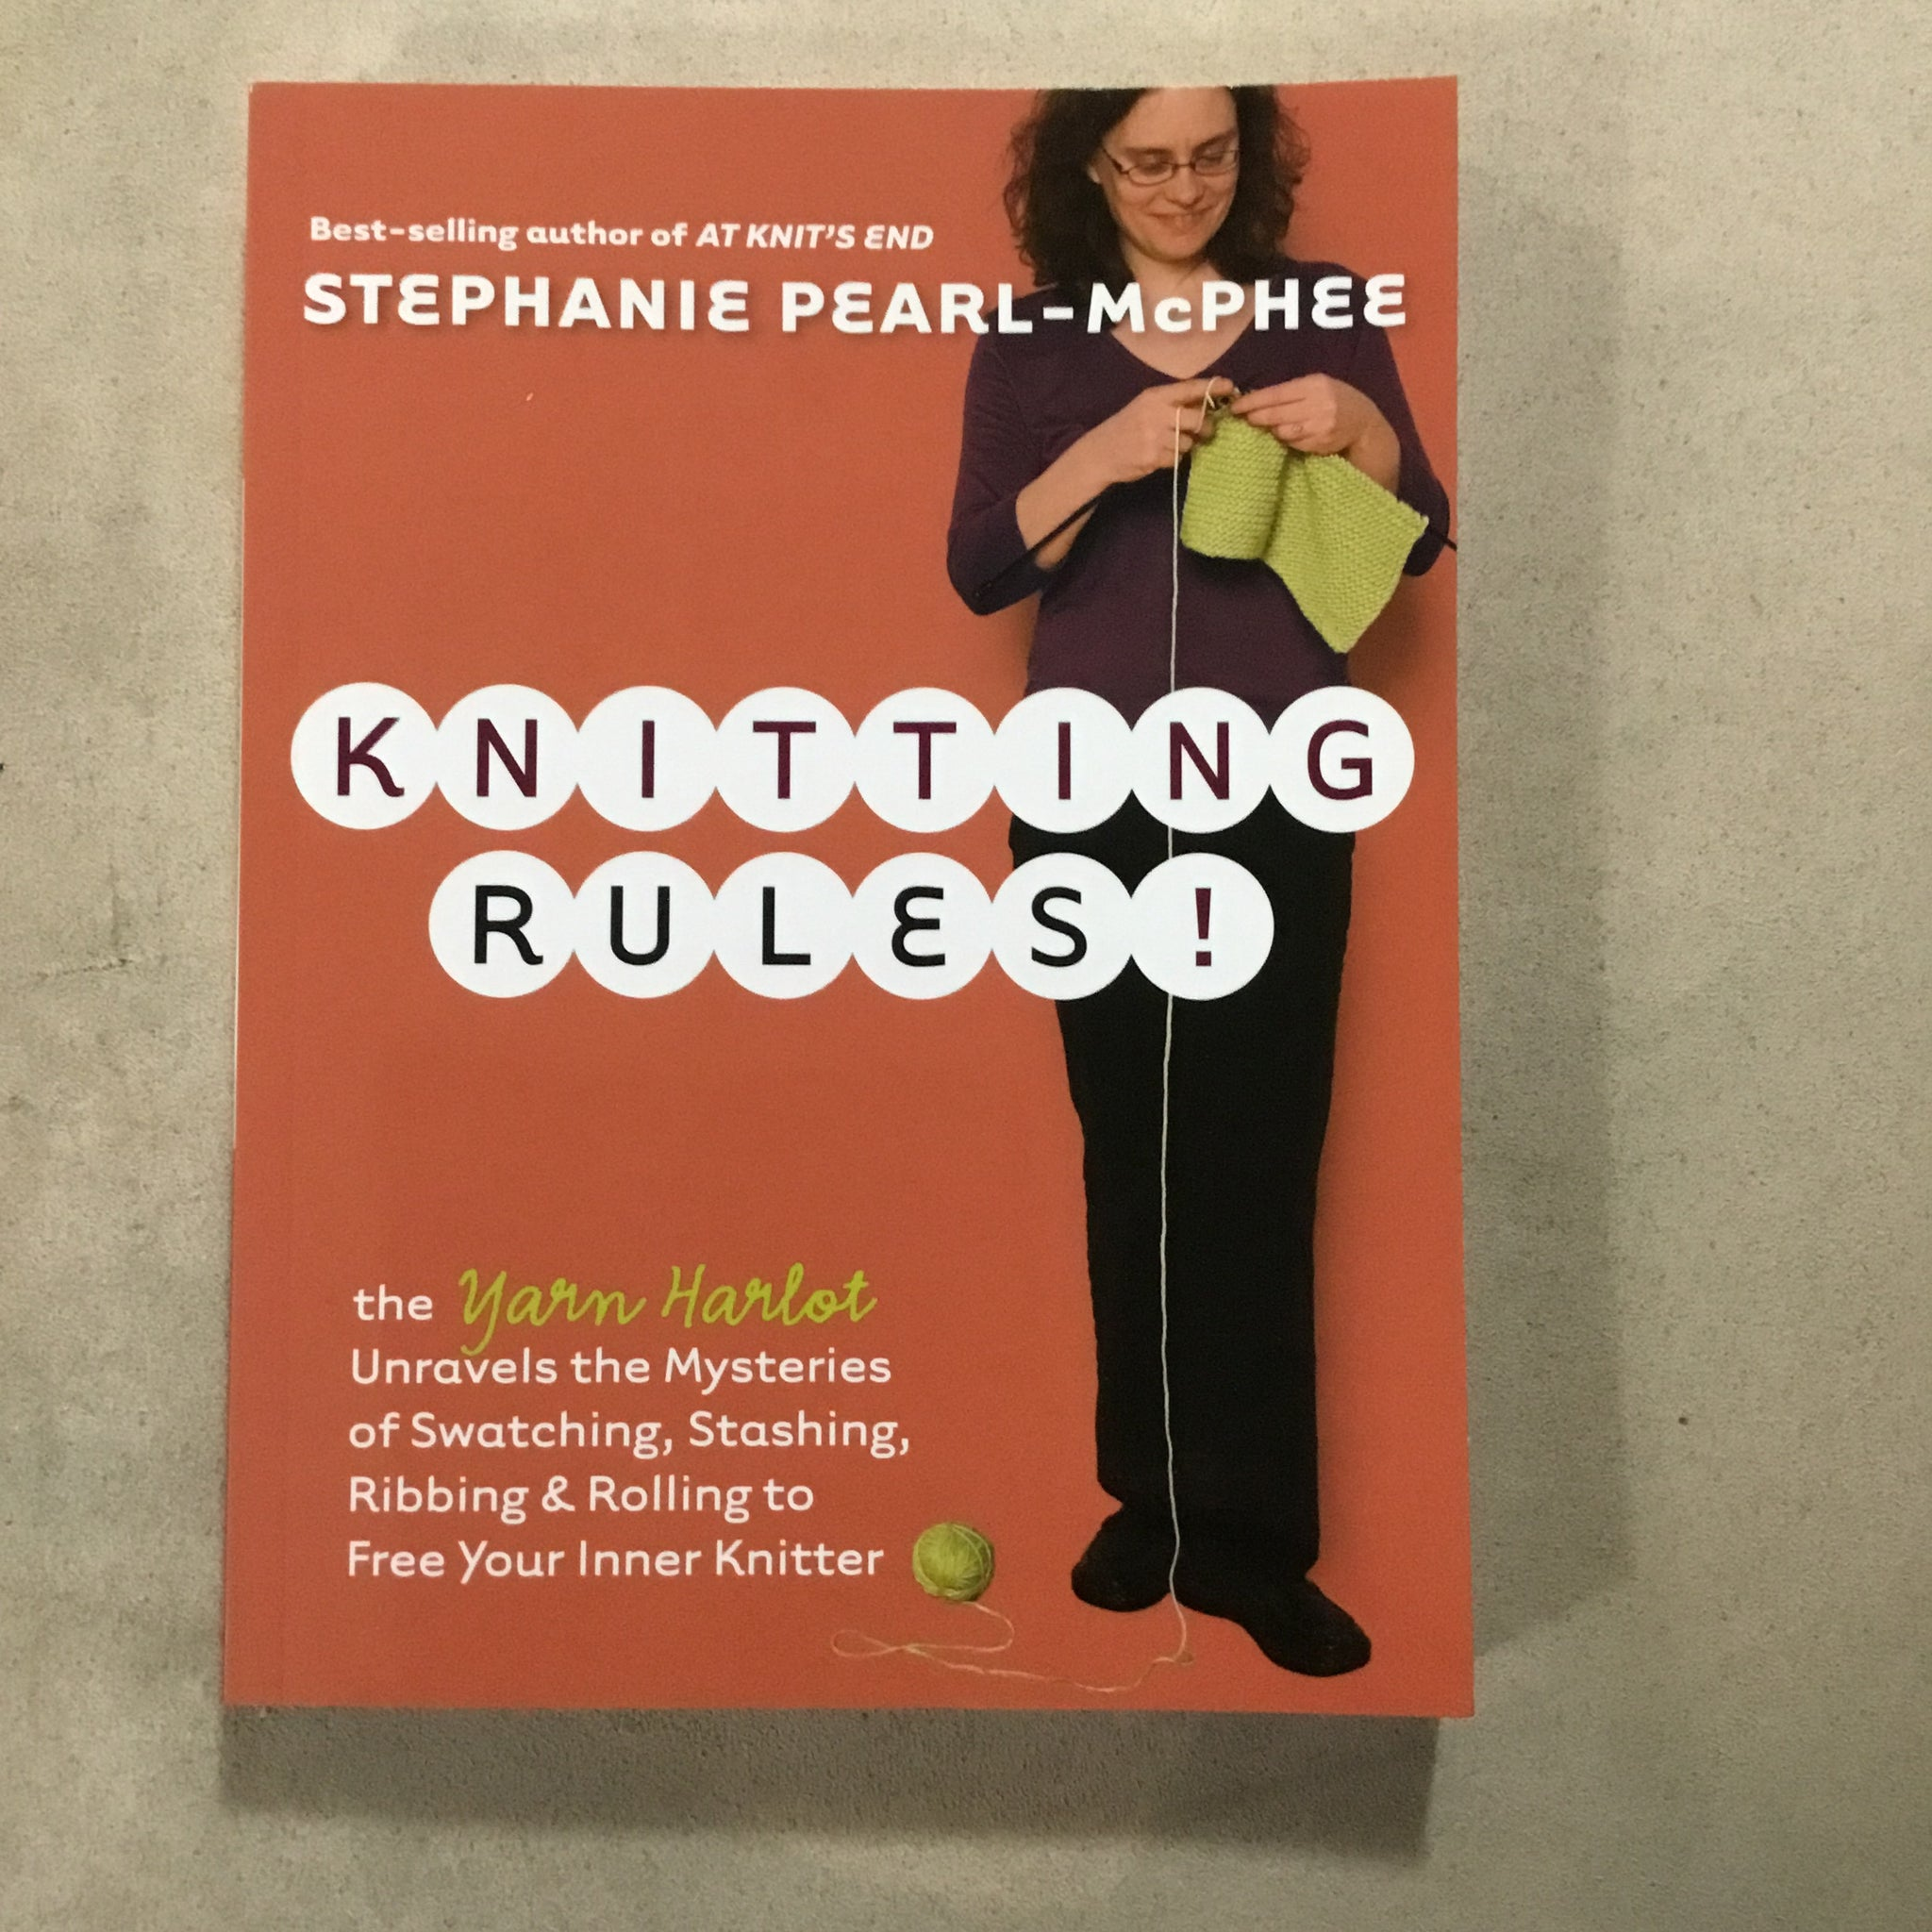 Knitting Rules!